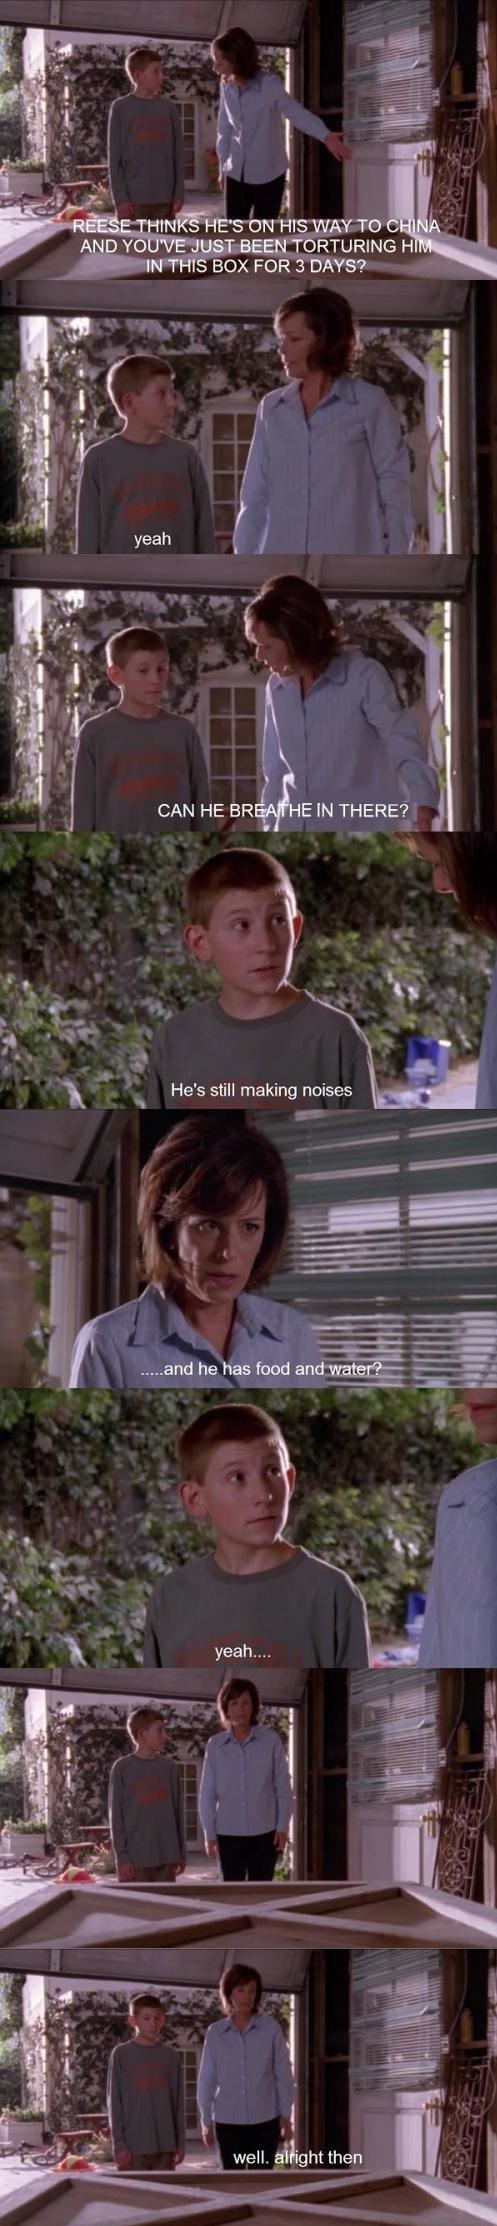 funny-malcolm-in-the-middle-box-parenting